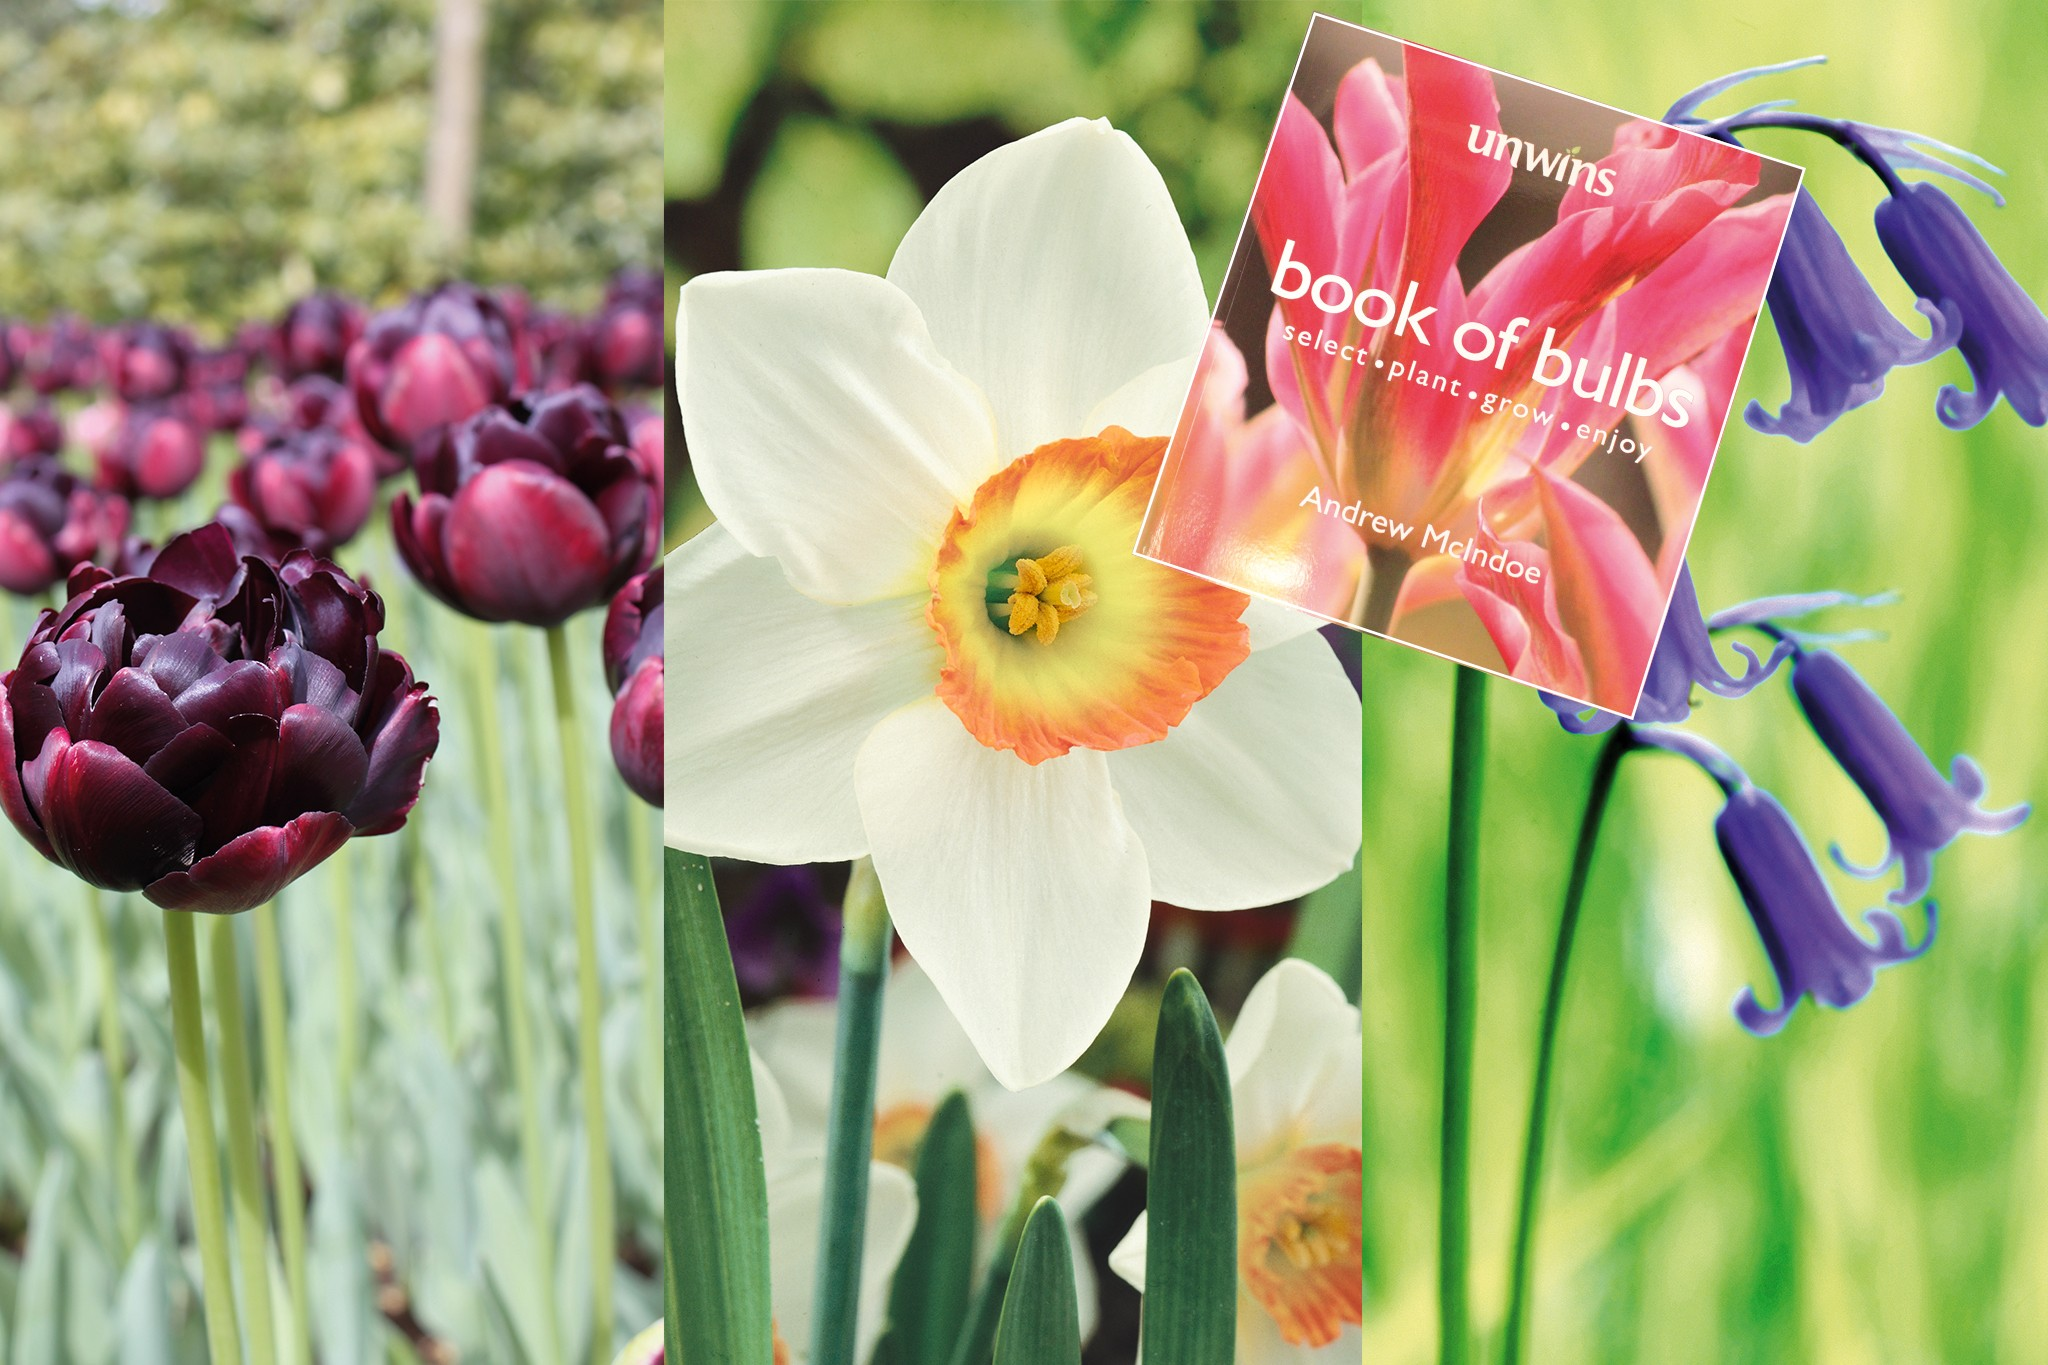 unwins-subs-free-book-with-spring-bulbs-2048-1365